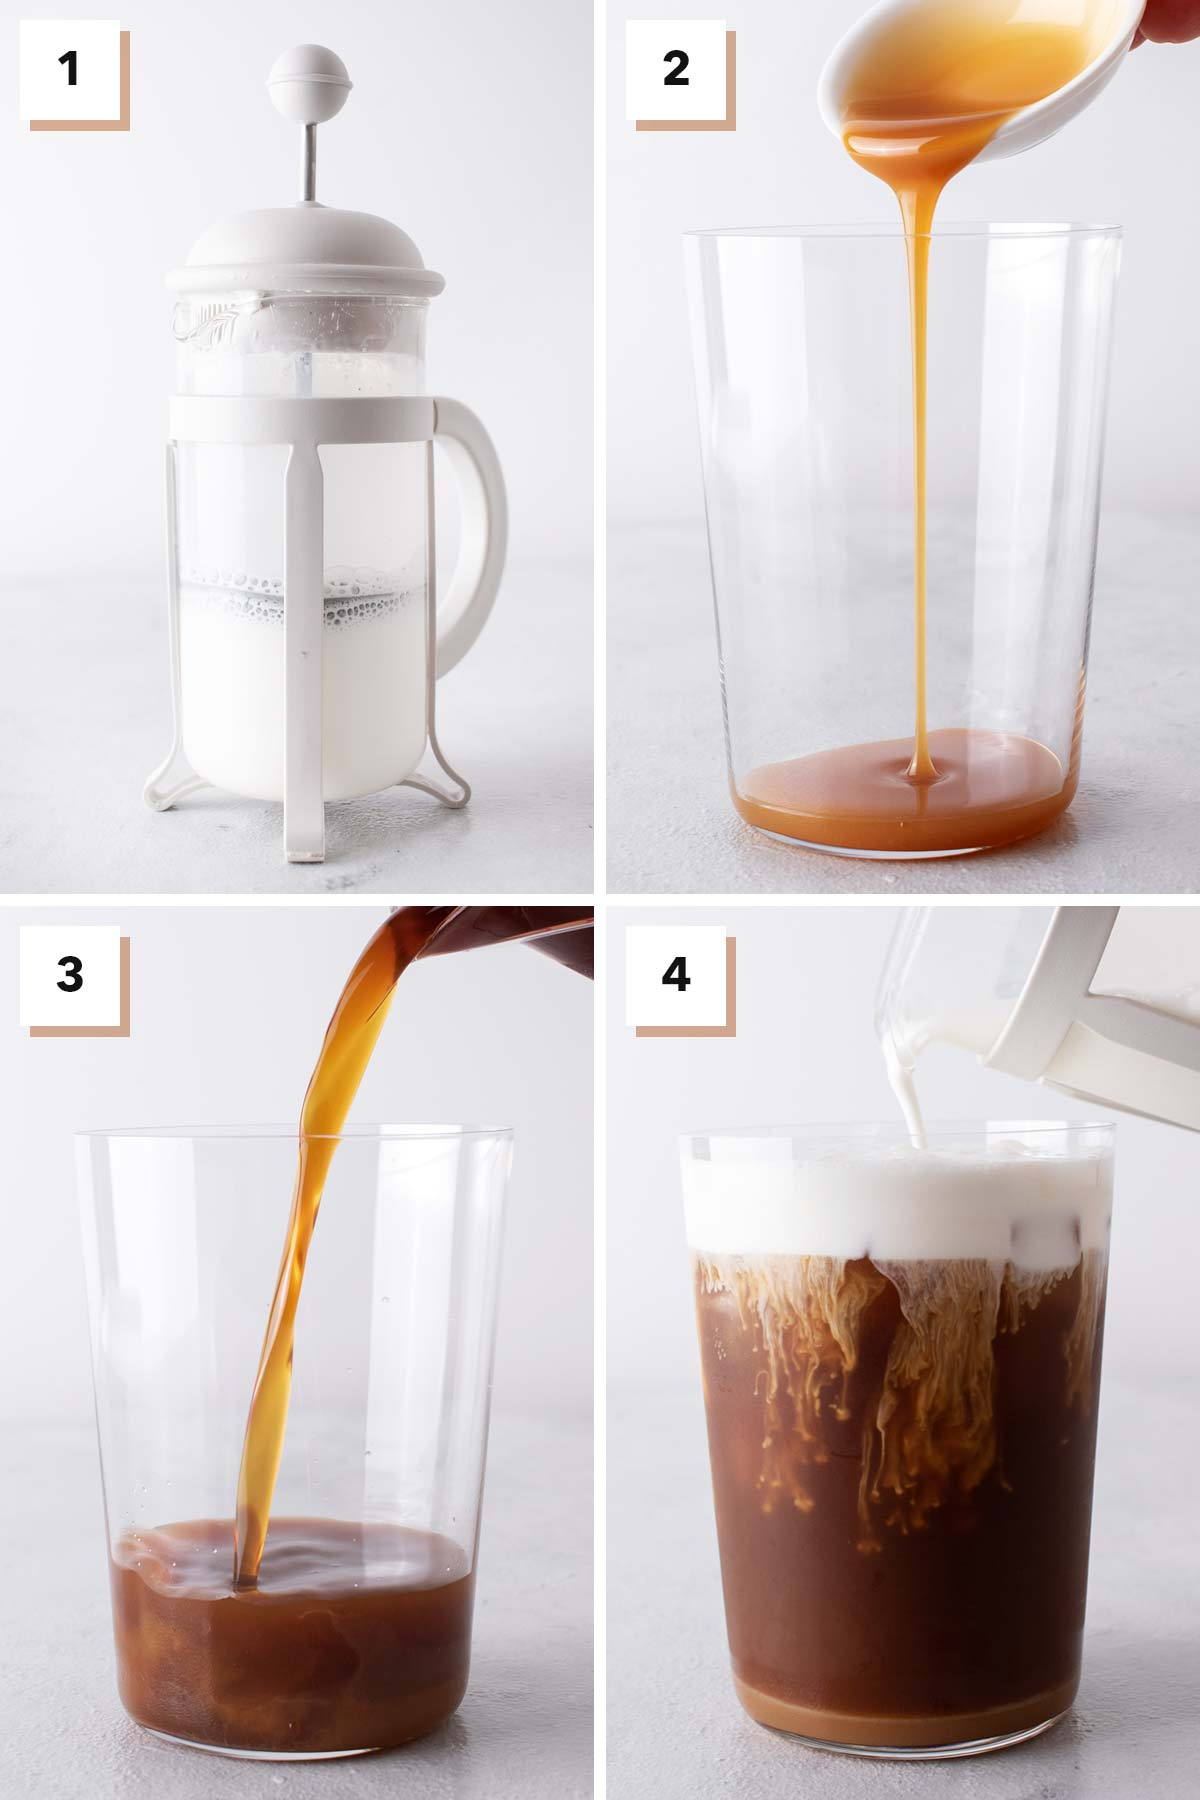 Four photo collage showing steps to make Starbucks Salted Caramel Cream Cold Brew.